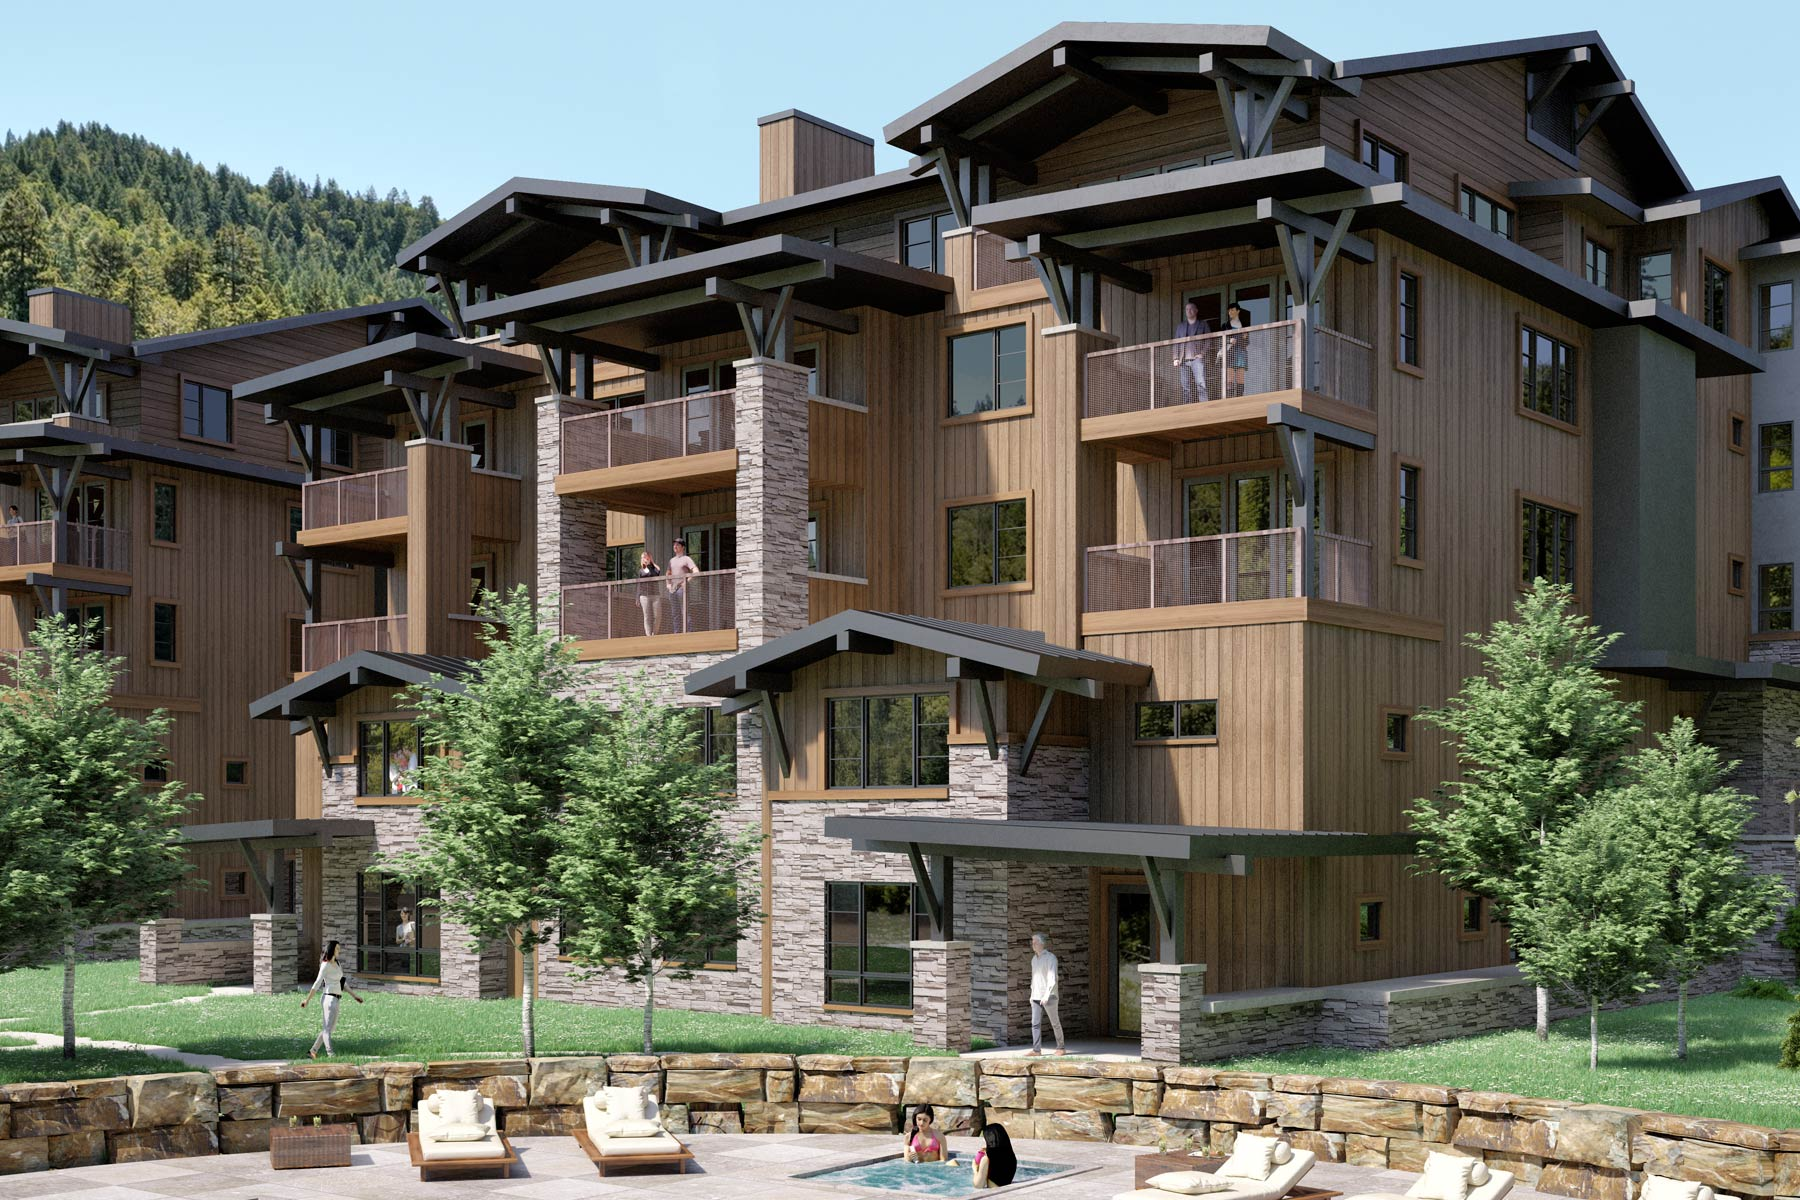 Condominium for Sale at New Construction Mountain Lake Condo 2 Summit View Road Unit 501 Big Sky, Montana 59716 United States